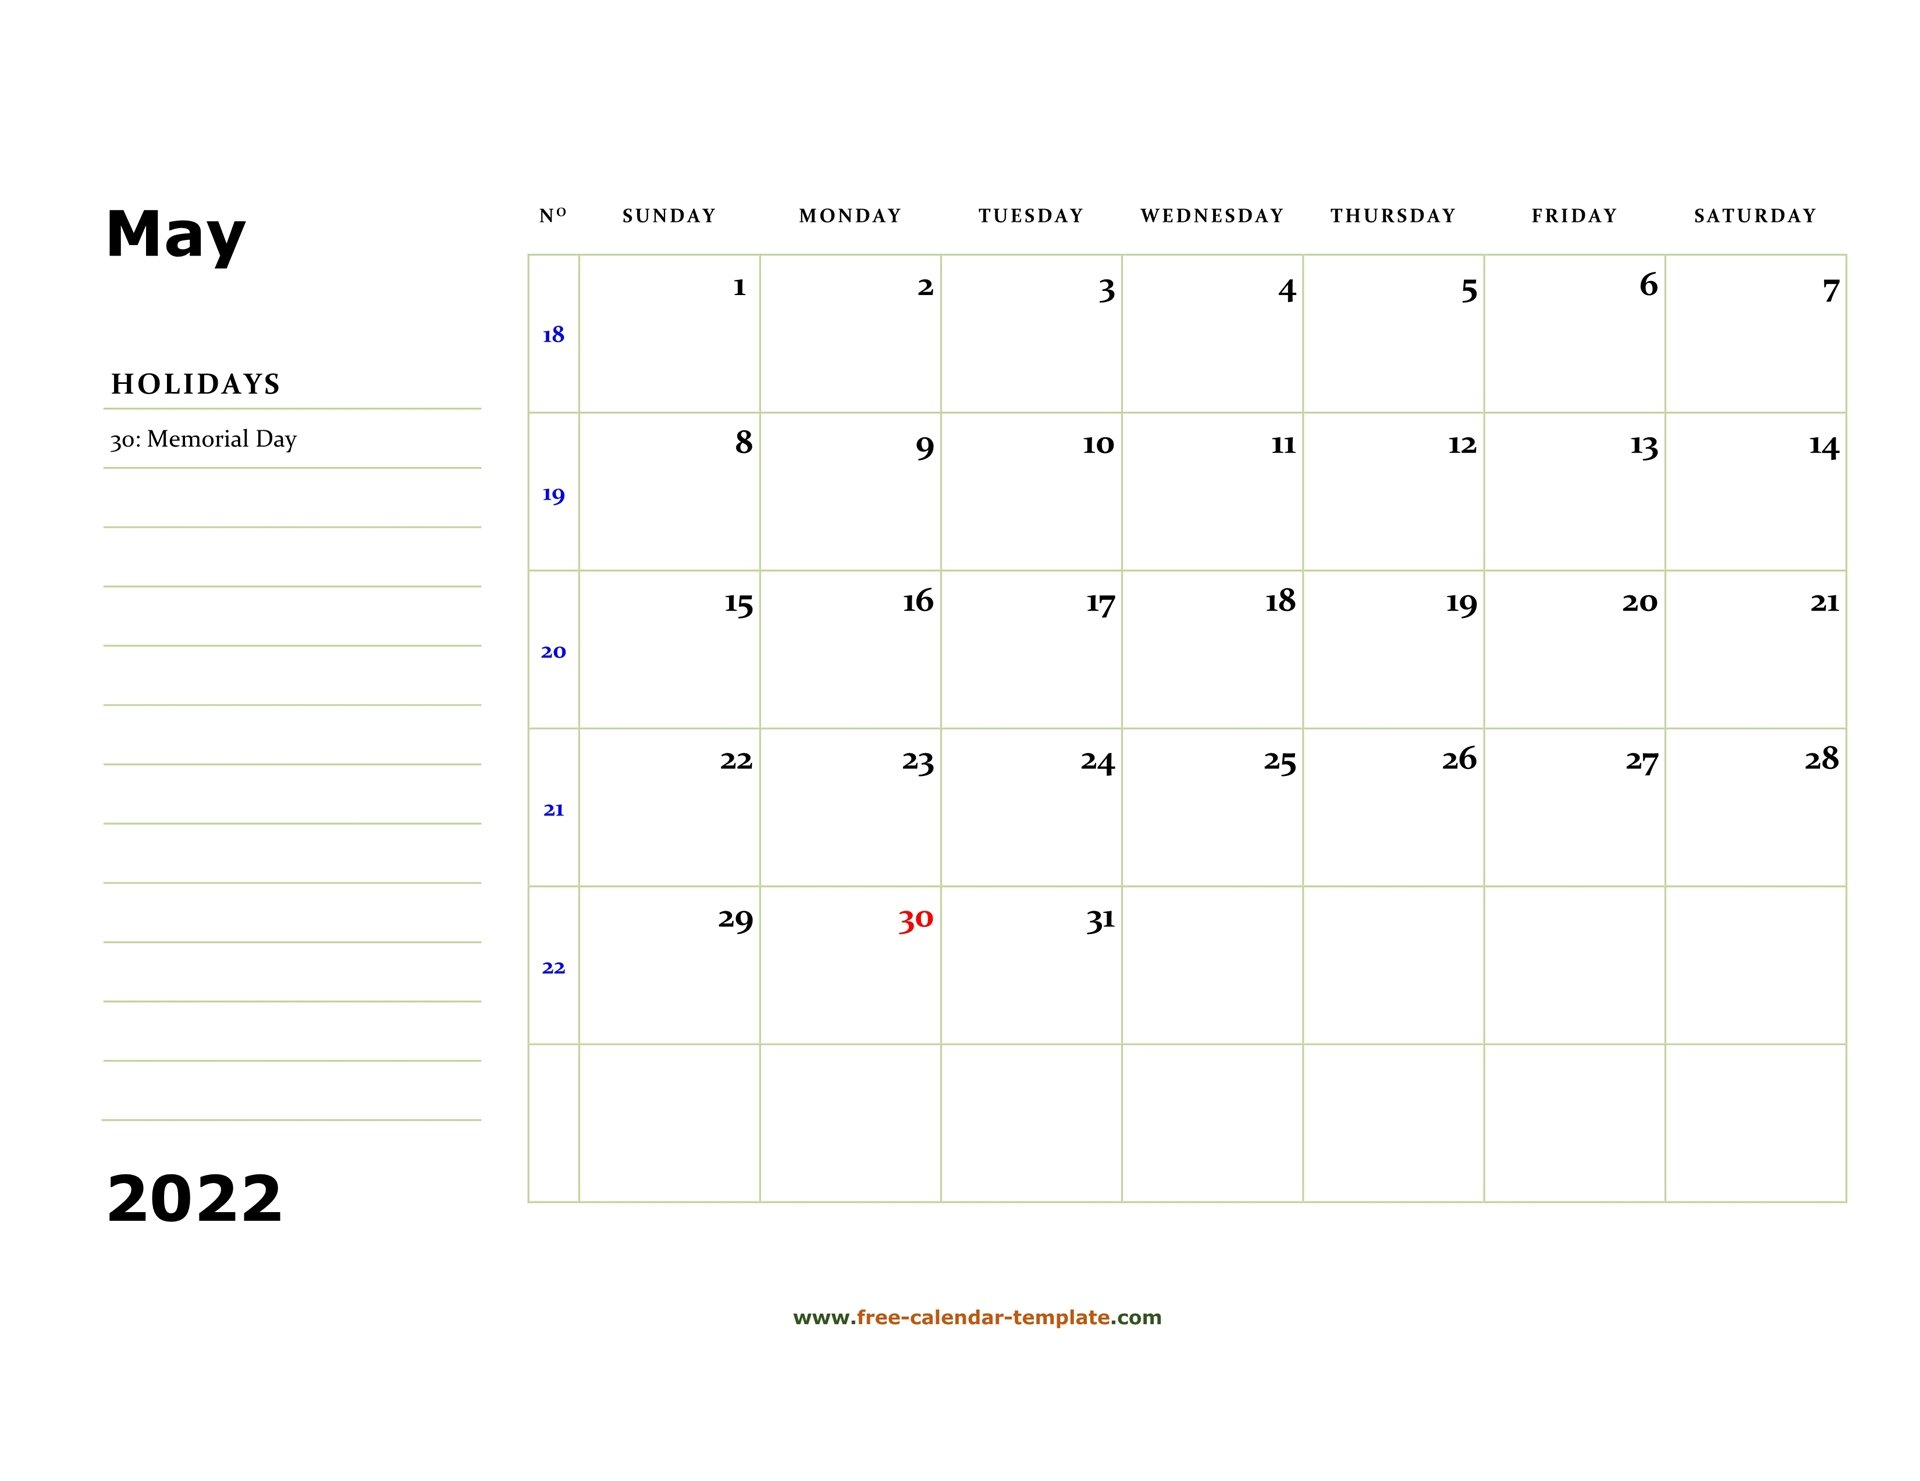 May 2022 Free Calendar Tempplate | Free-Calendar-Template throughout May 2022 Calendar Letter Graphics